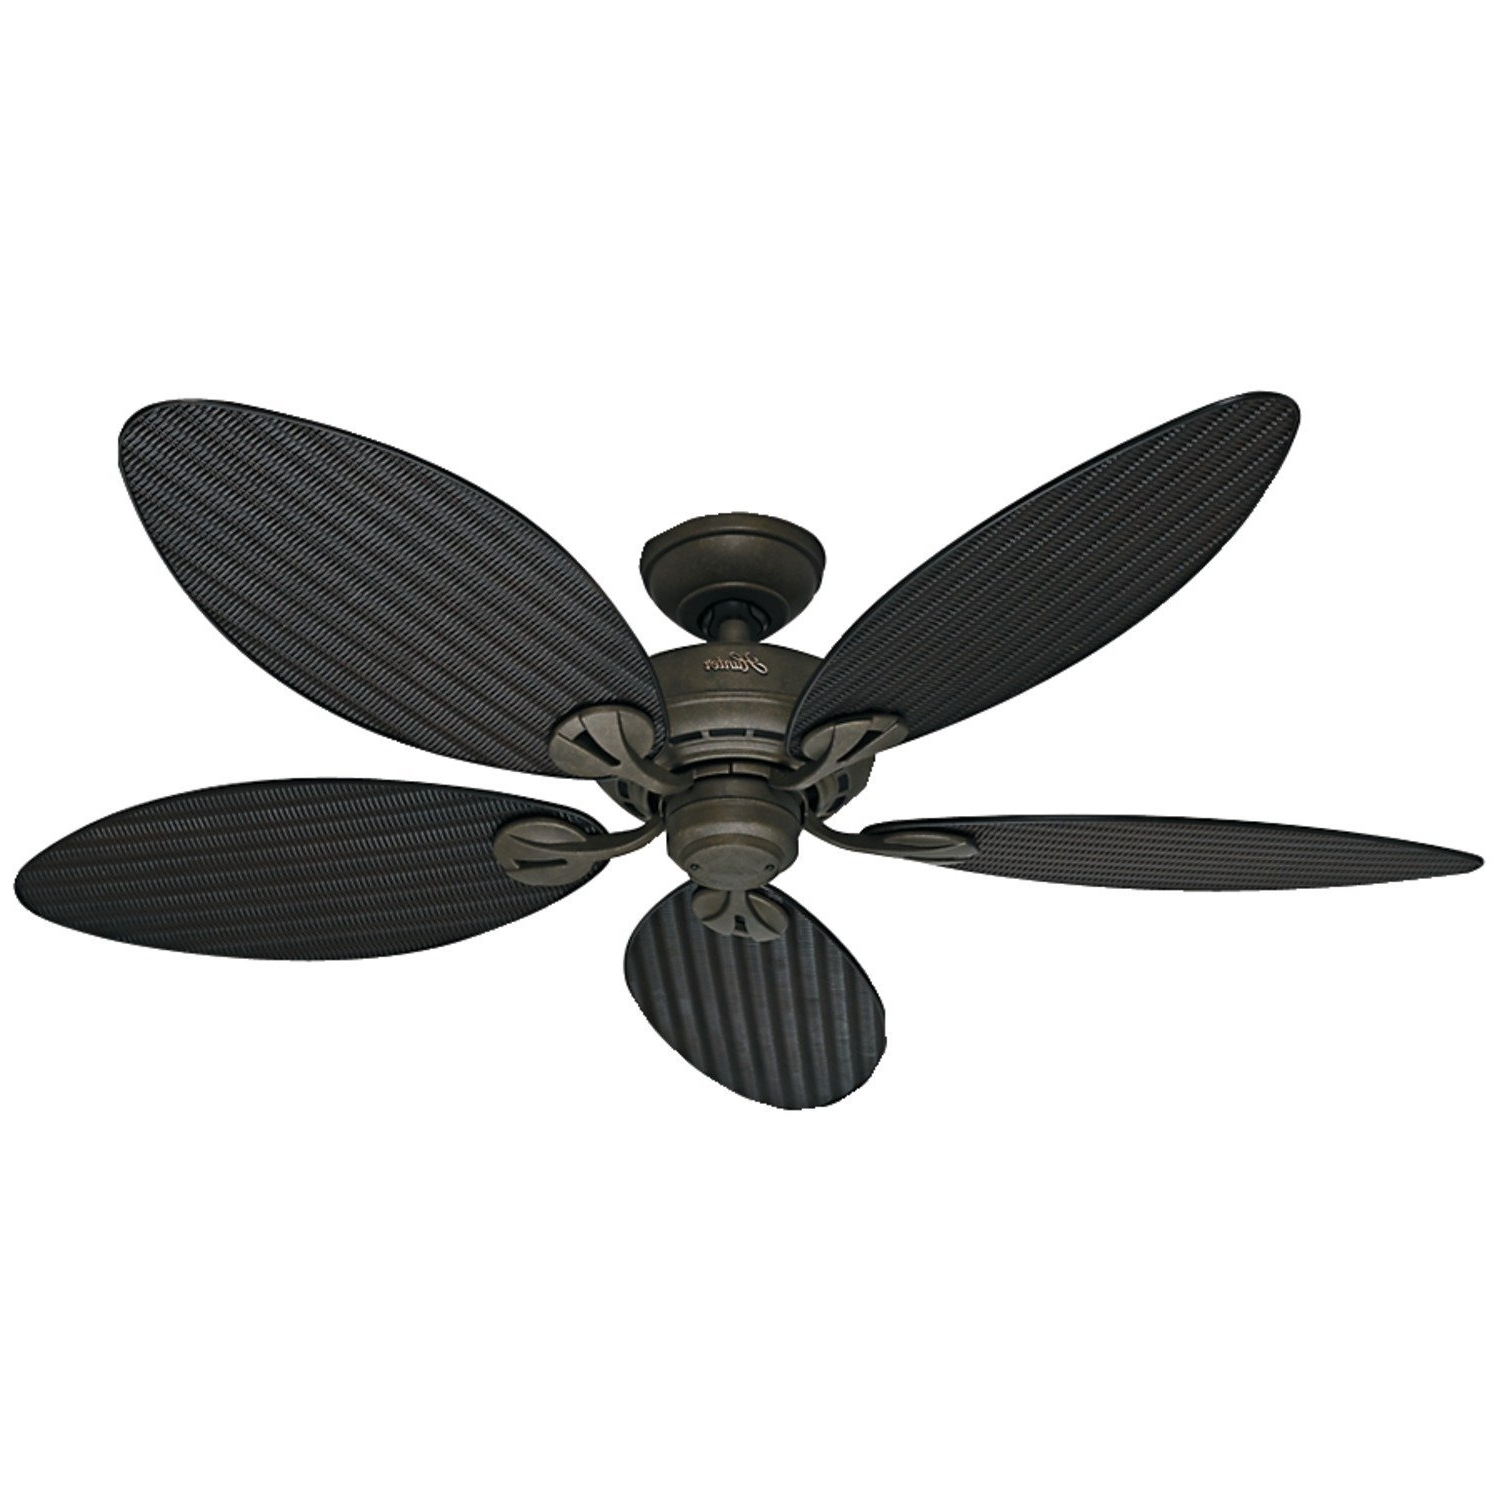 Latest Ceiling: Marvellous Ceiling Fans With Leaf Shaped Blades Wicker For Outdoor Ceiling Fans With Leaf Blades (View 10 of 20)